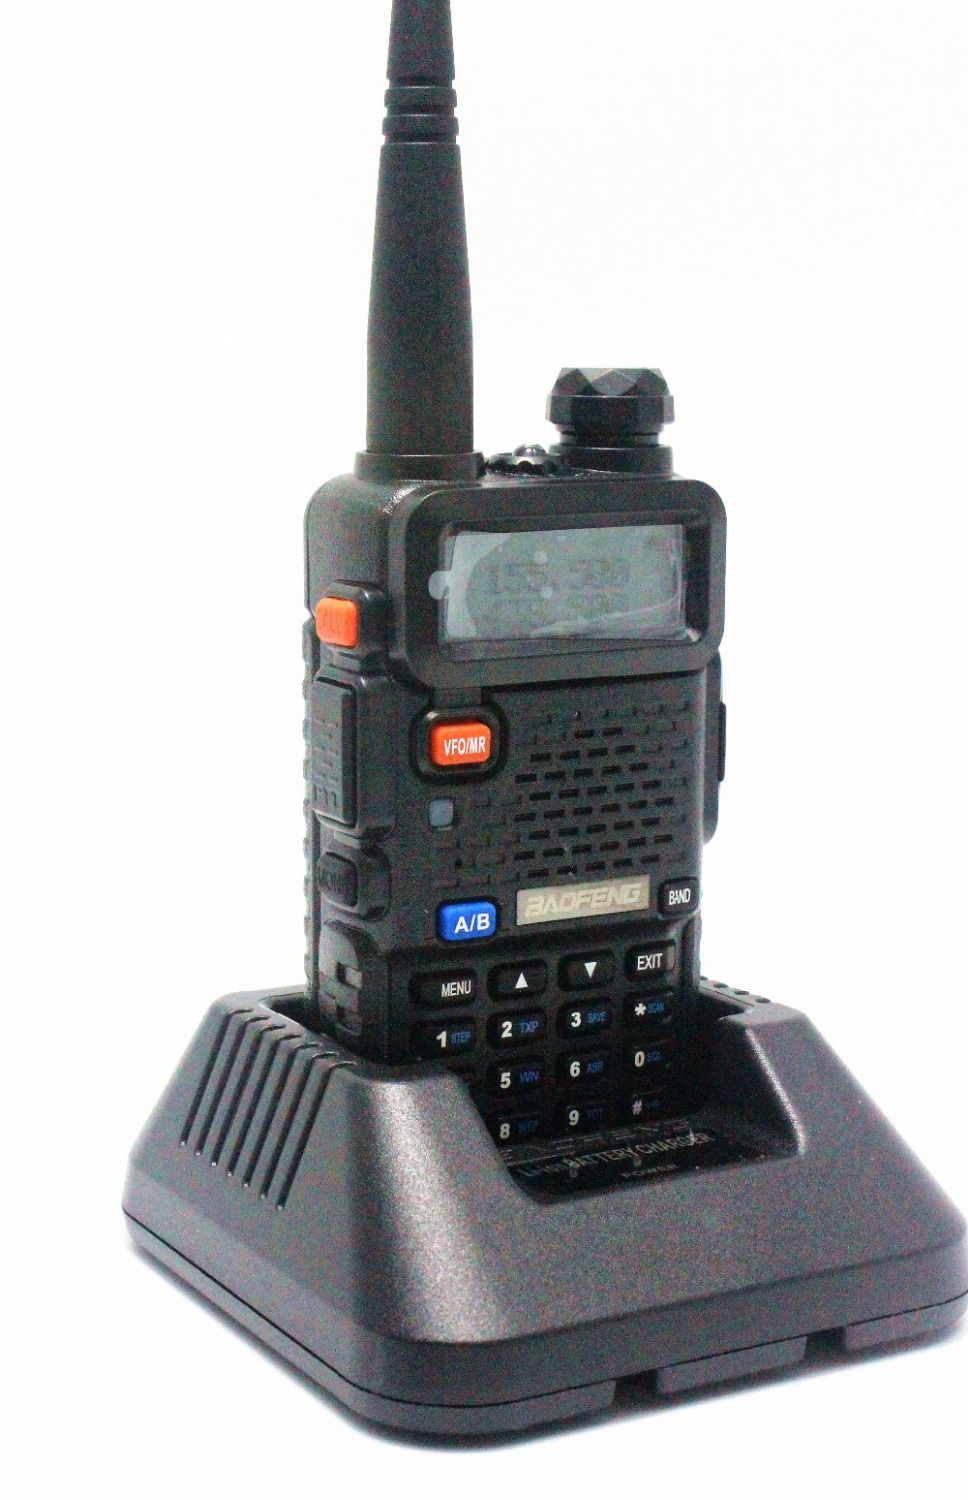 BaoFeng UV-5R Walkie Talkie 136-174 /400-520Mhz VHF/UHF DUAL-BAND Handy Hunting Radio Receiver With Headfone